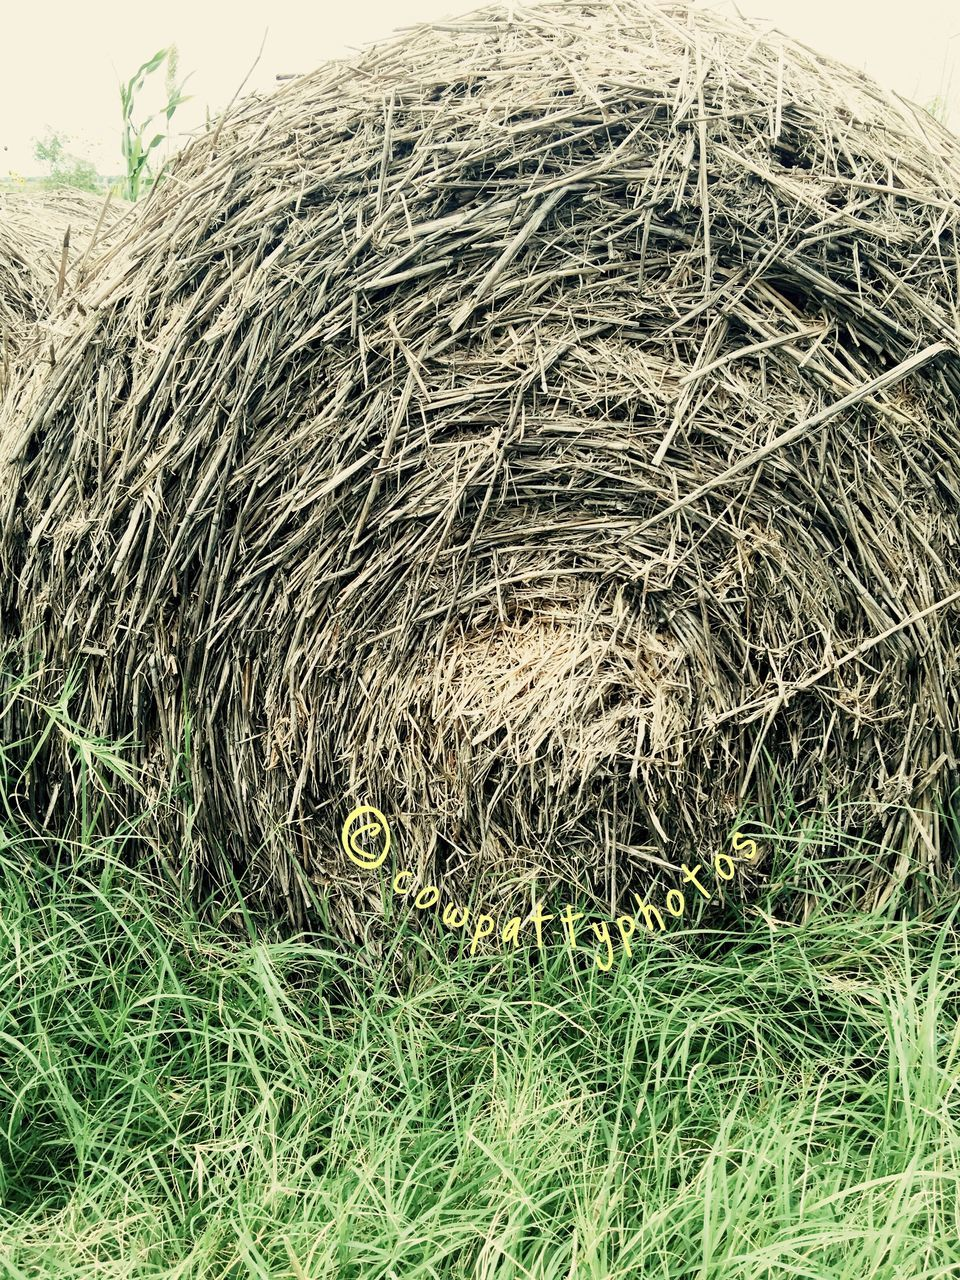 hay, no people, hay bale, outdoors, bale, day, agriculture, stack, grass, nature, close-up, mammal